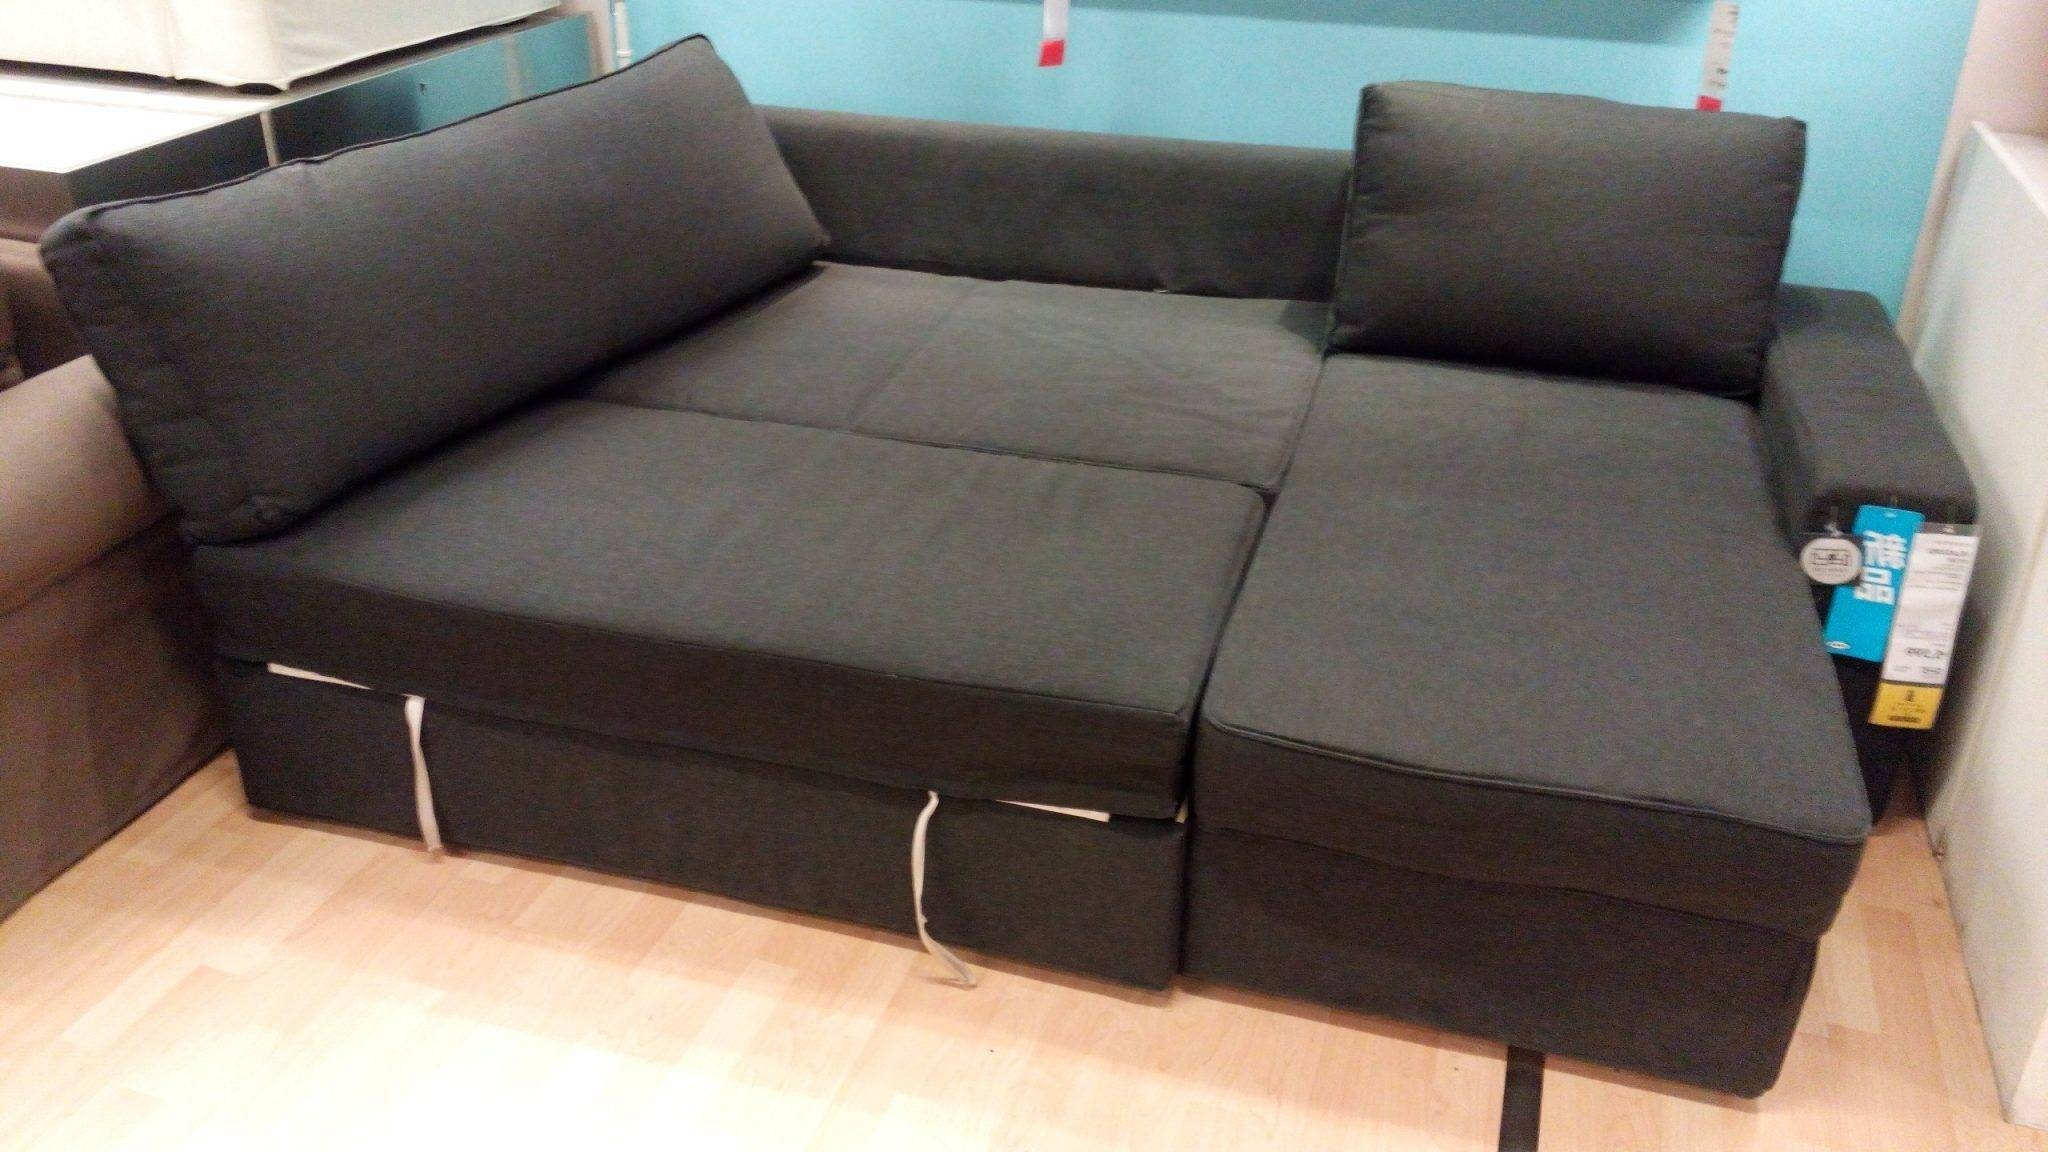 Furniture: Fancy Sleeper Sofa Ikea For Your Best Living Room For American Sofa Beds (View 13 of 30)